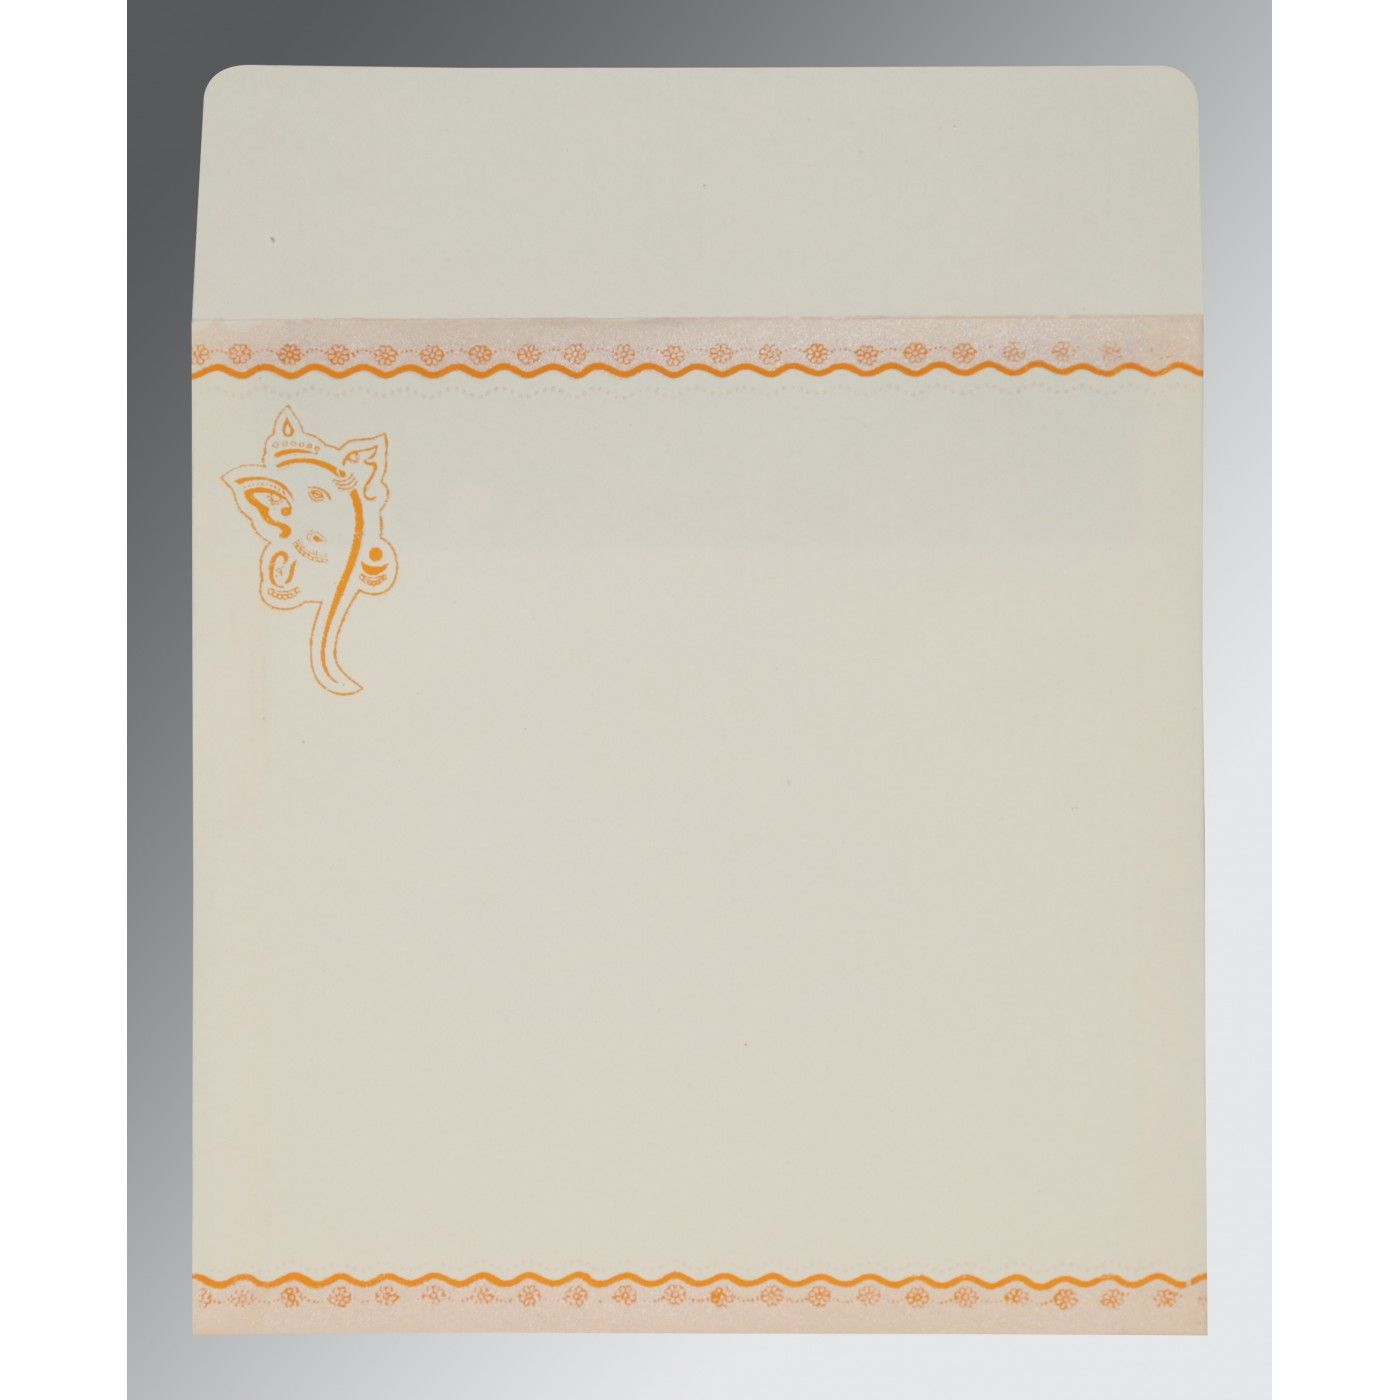 VIVID ORANGE MATTE EMBOSSED WEDDING INVITATION : CW-2214 - IndianWeddingCards